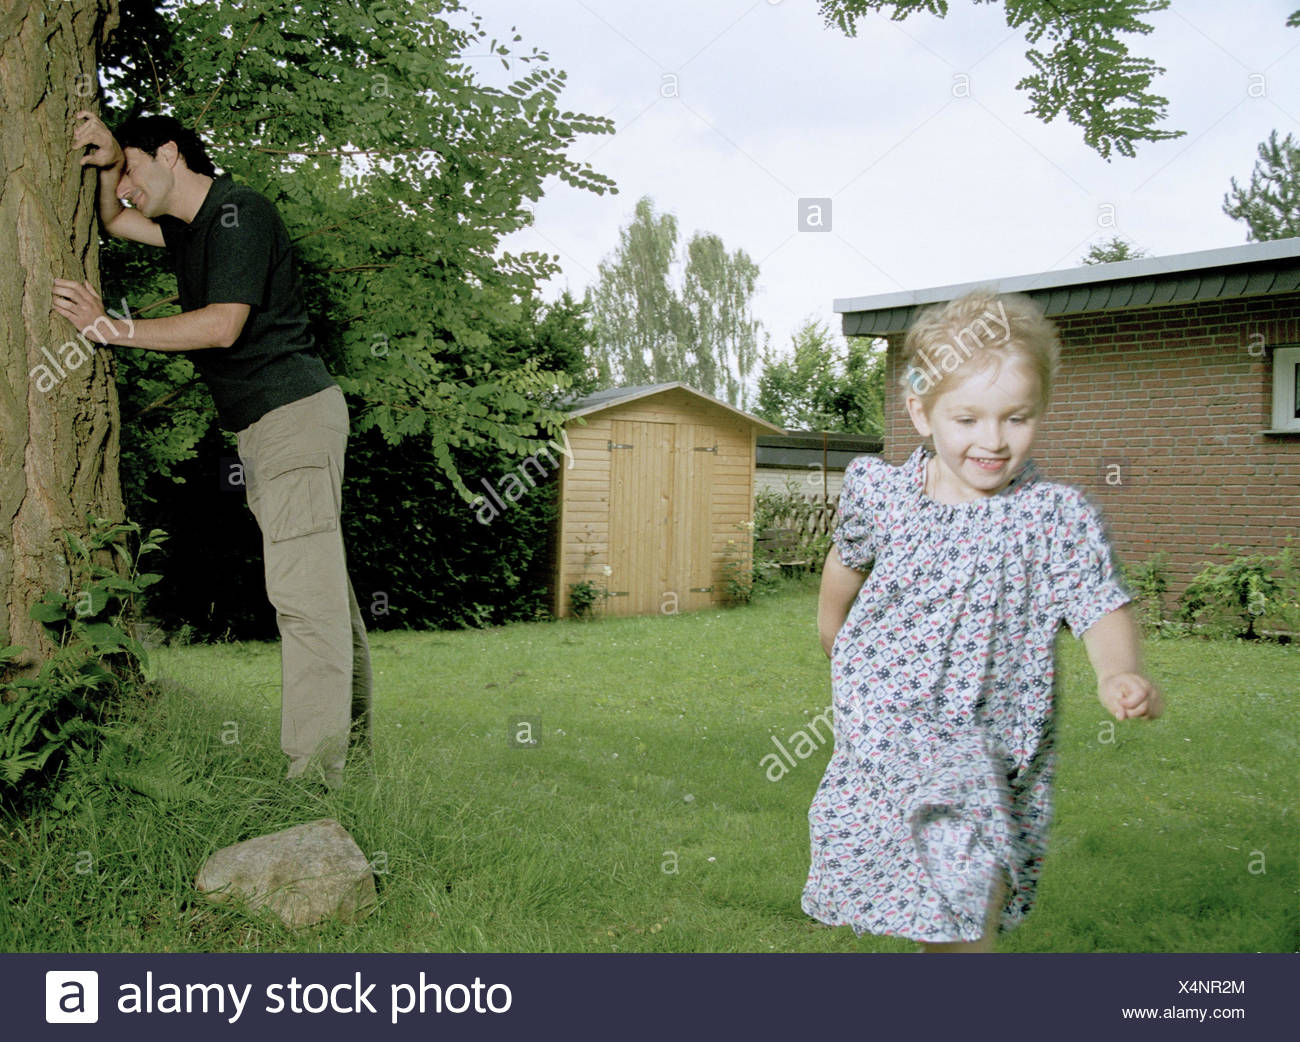 Garden, father, subsidiary, hide-and-seek, man, parent, 30-40 years, parent, single parent, single, tree, lean, eyes head straight, count, wait, look away, child, girl, 4 - 5 years, infant, childhood, happy, fun, game, game fun, play, run away, run, hide, - Stock Image